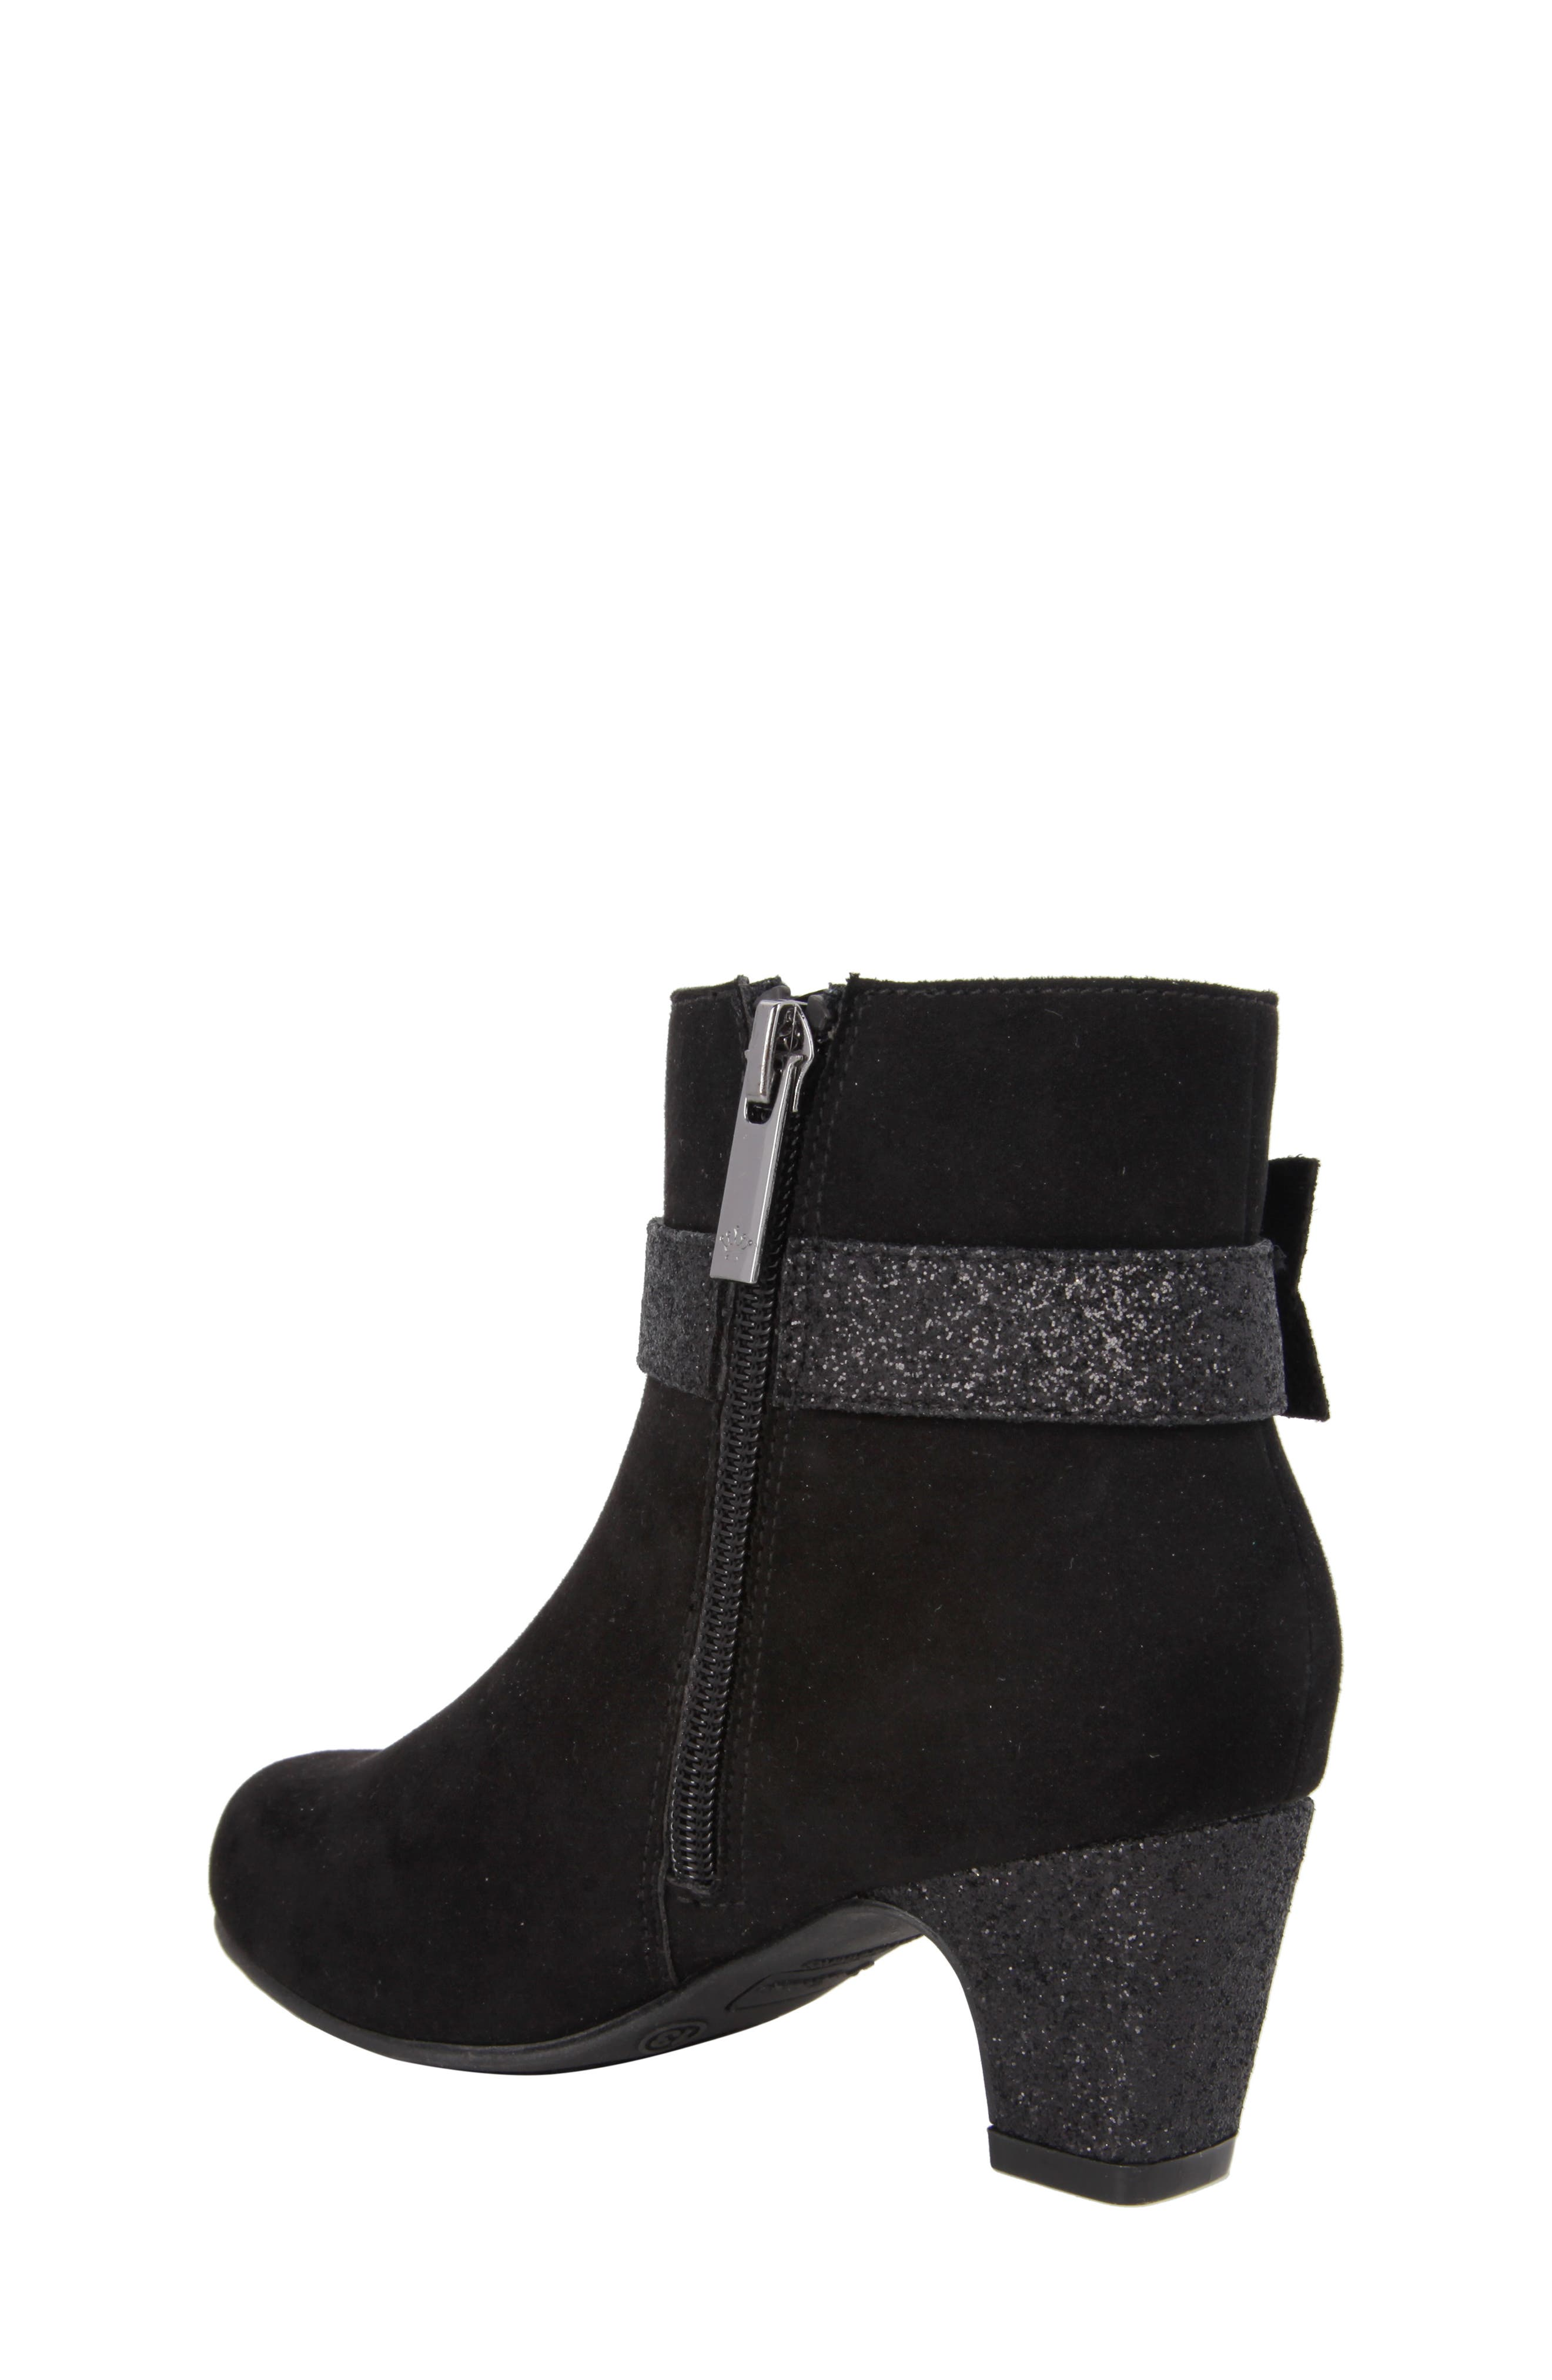 Glitter Bow Bootie,                             Alternate thumbnail 2, color,                             Black Suede/ Glitter